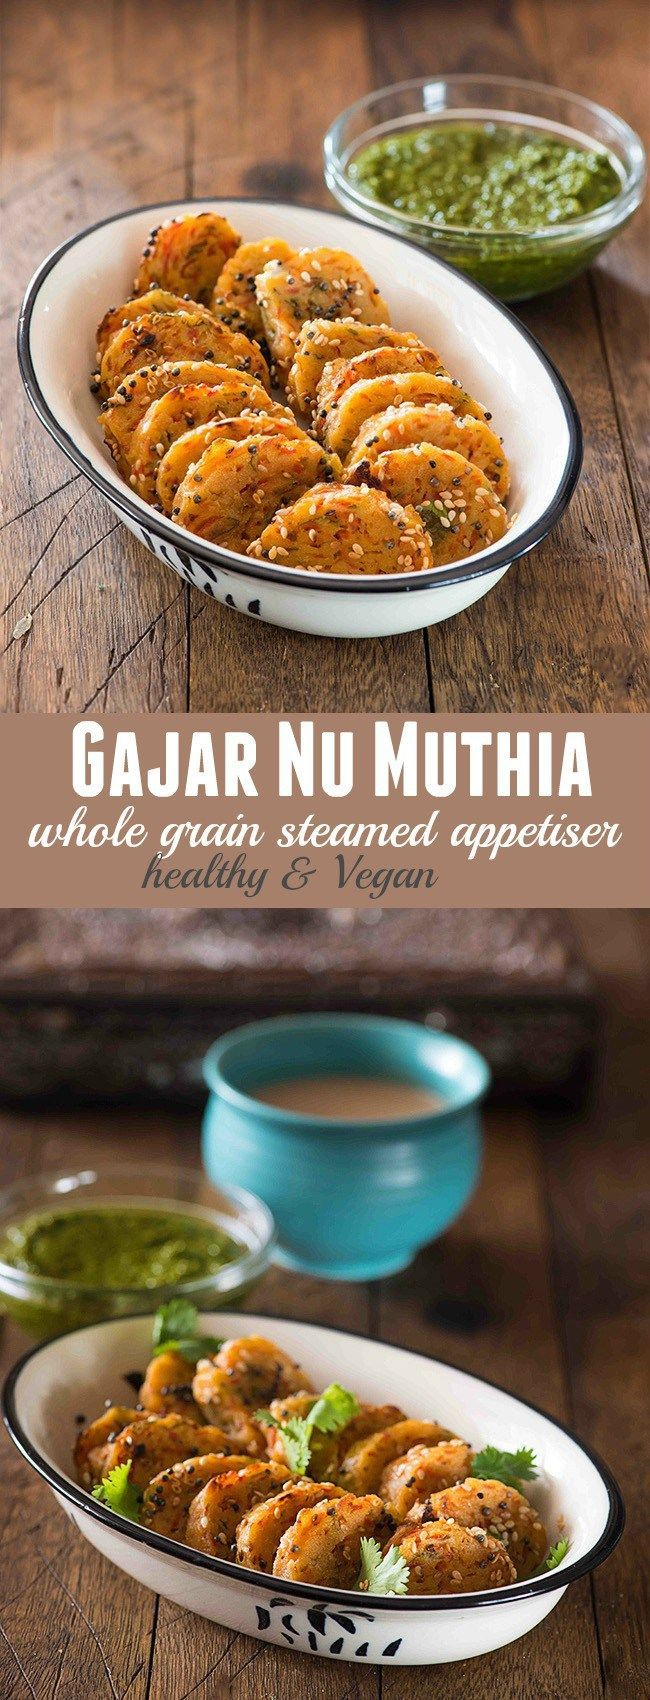 Muthia are popular teatime snack or farsan from Gujarat. These are tasty and healthy steamed snacks which are made using vegetables and multigrain flour. Gajar Nu Muthia is made using carrots and multigrain flour